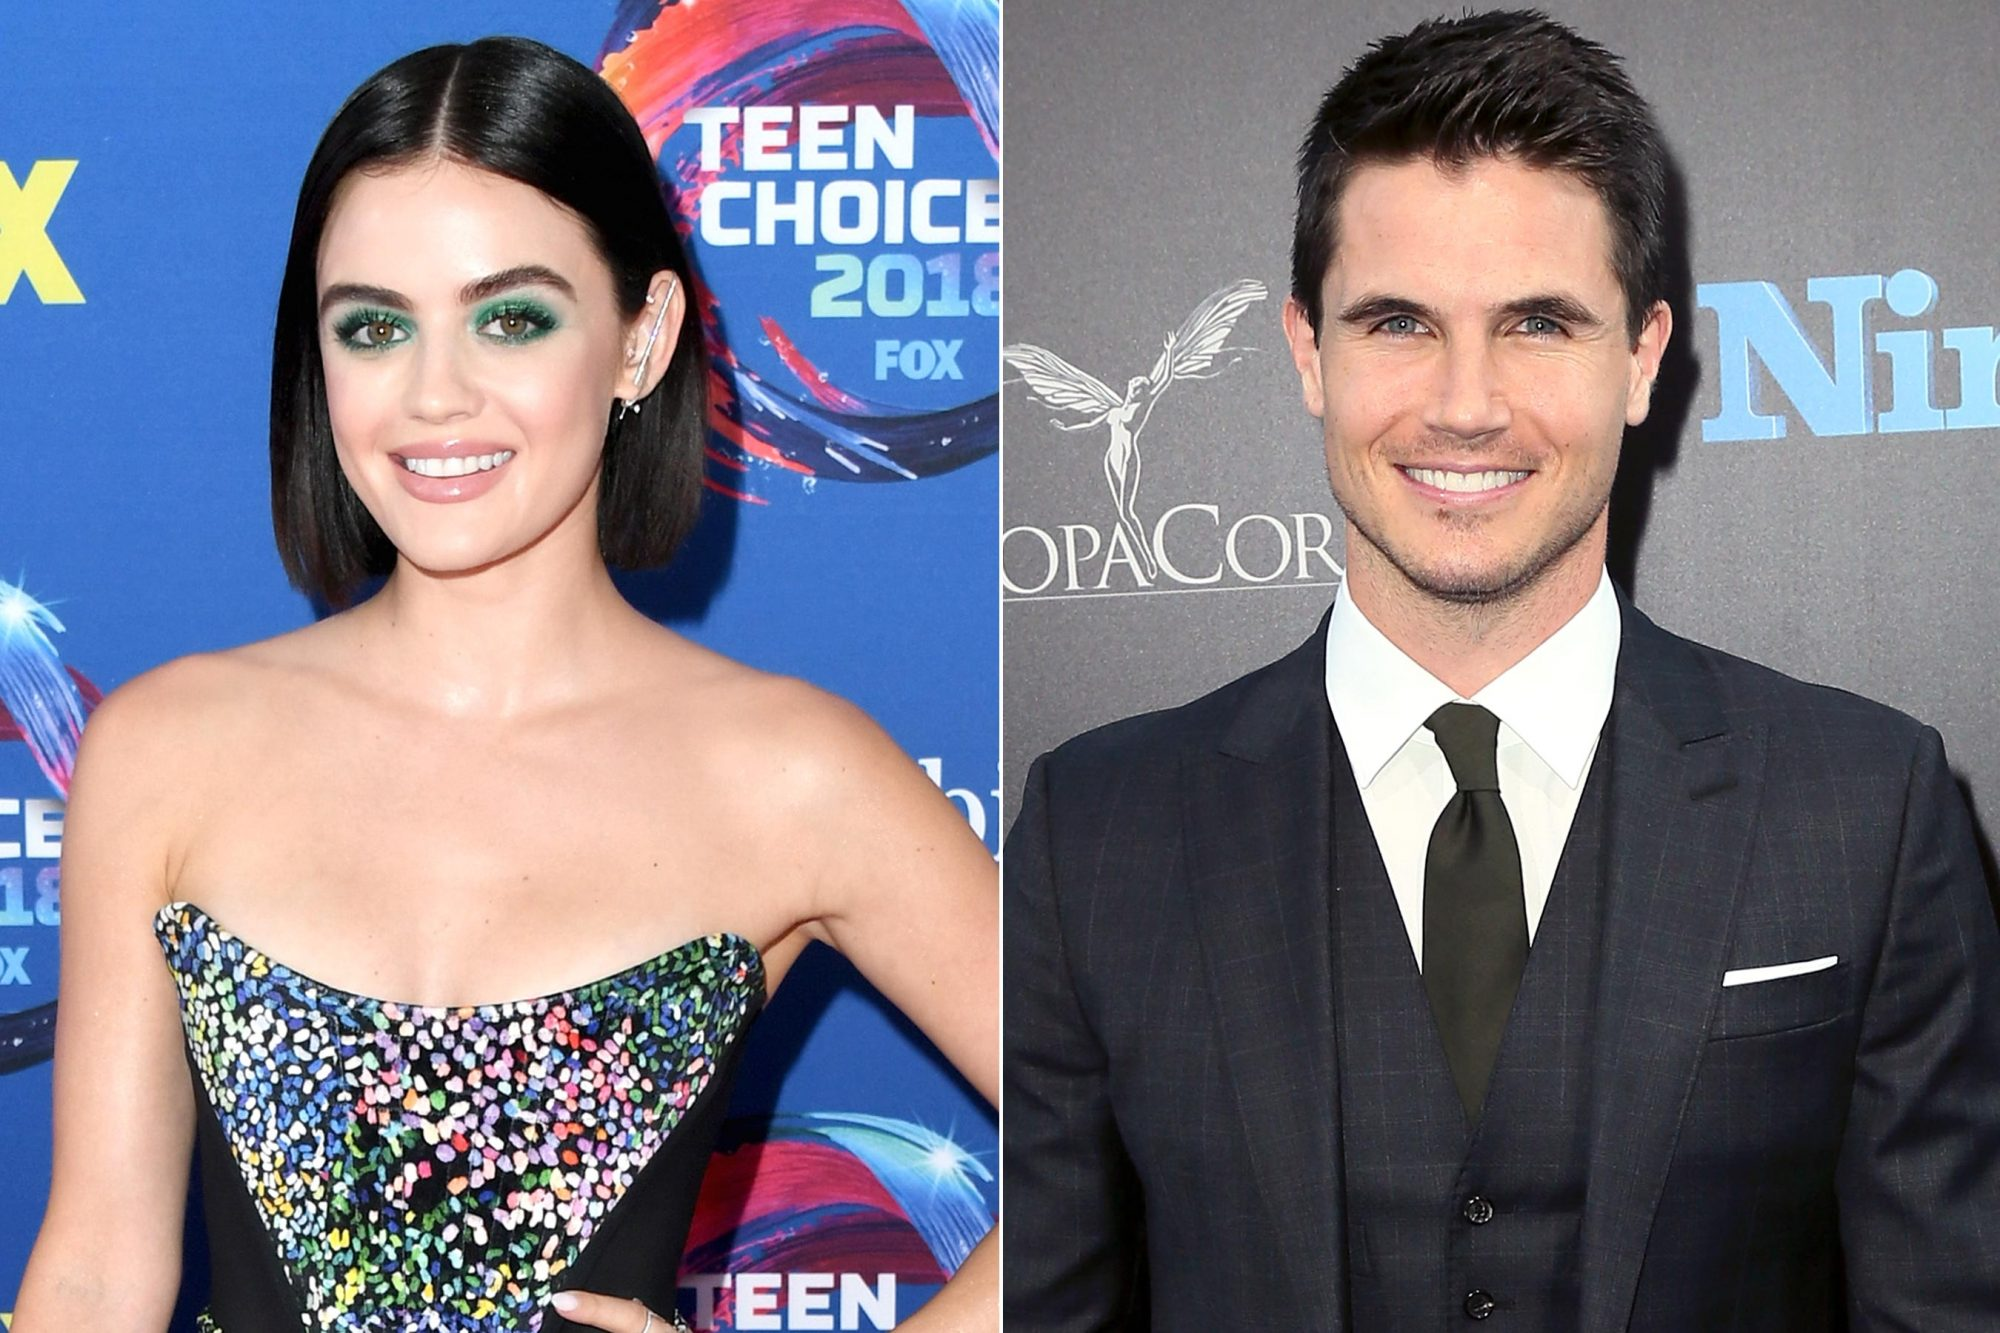 "INGLEWOOD, CA - AUGUST 12: Lucy Hale attends FOX's Teen Choice Awards at The Forum on August 12, 2018 in Inglewood, California. (Photo by Jon Kopaloff/FilmMagic) HOLLYWOOD, CA - AUGUST 01: Actor Robbie Amell attends the premiere of EuropaCorp's ""Nine Lives"" at the TCL Chinese Theatre on August 1, 2016 in Hollywood, California. (Photo by David Livingston/Getty Images)"